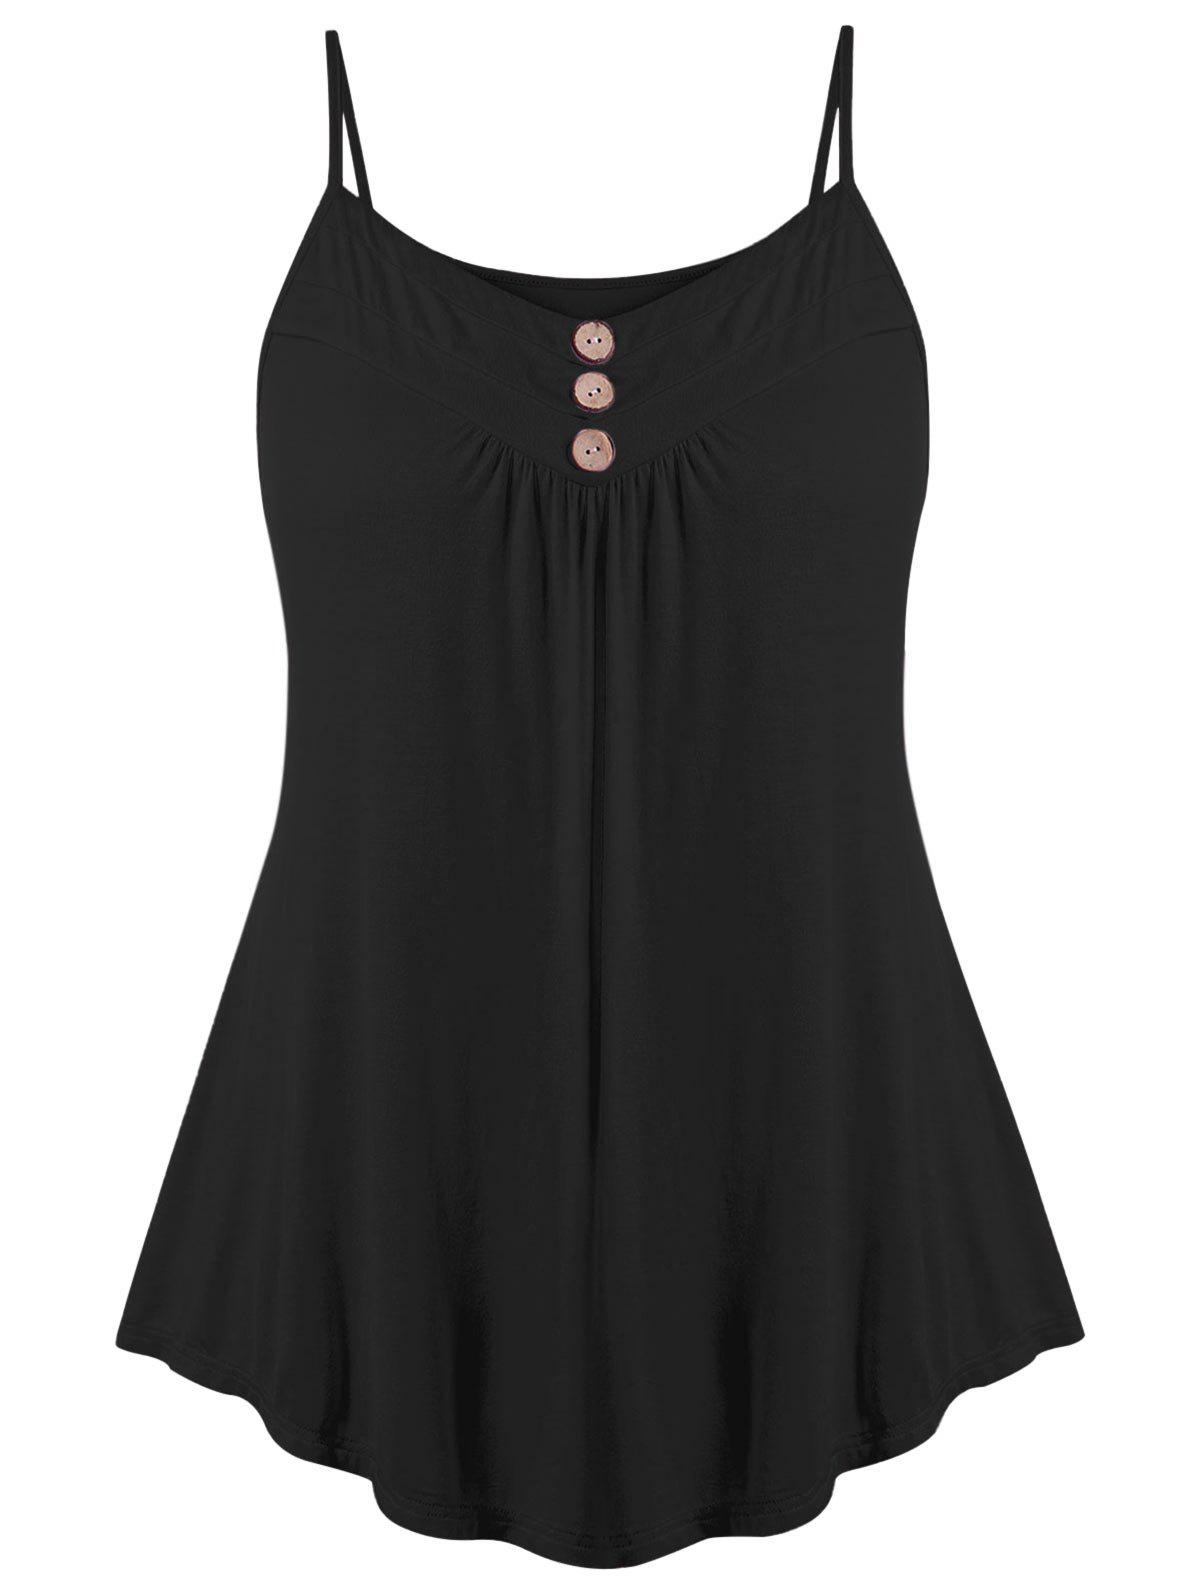 Plus Size Button Decorated Tank Top - BLACK 5X